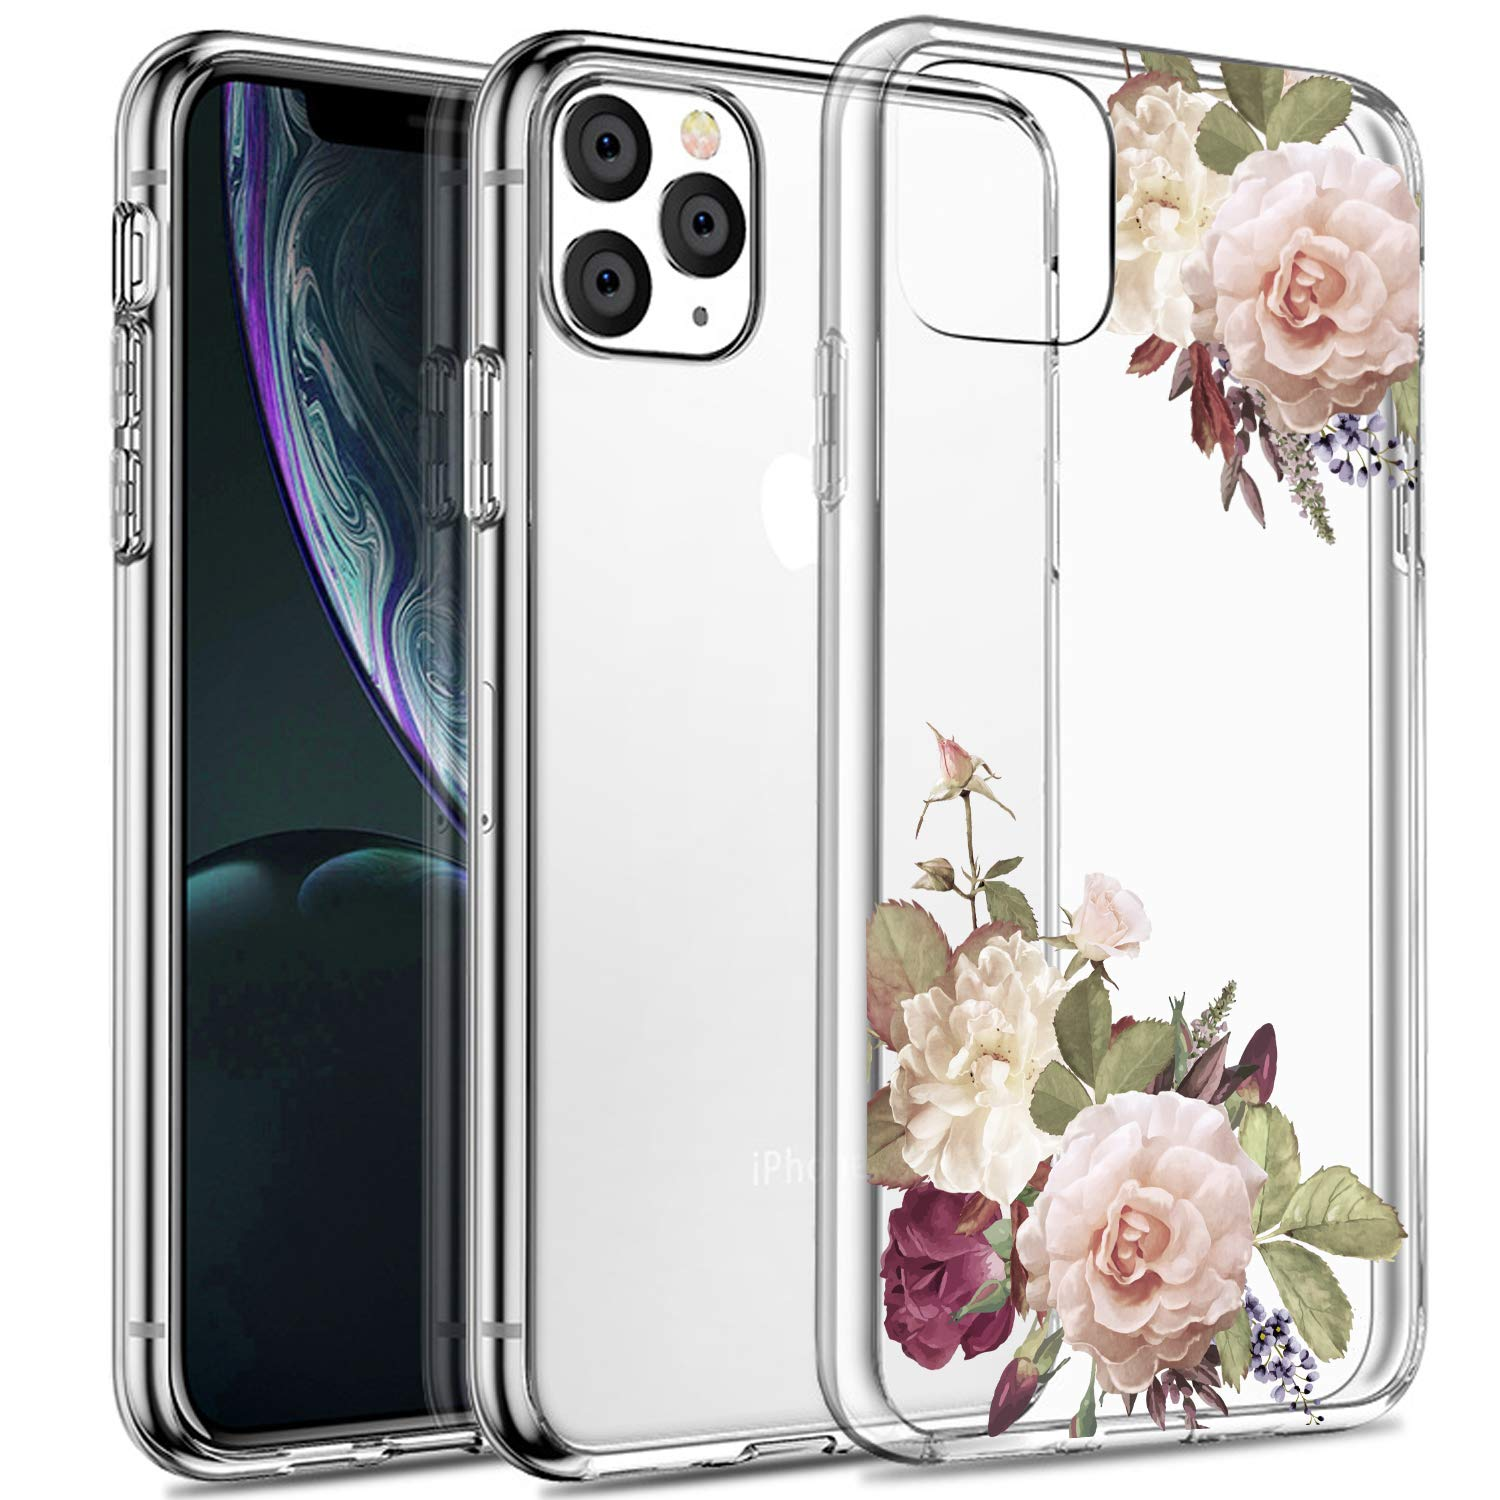 SPEVERT iPhone 11 Pro Case 5.8 inches, Flower Pattern Printed Clear Design Transparent Hard Back Case with TPU Bumper Cover for iPhone 11 Pro 5.8 inch 2019 Released - White Rose